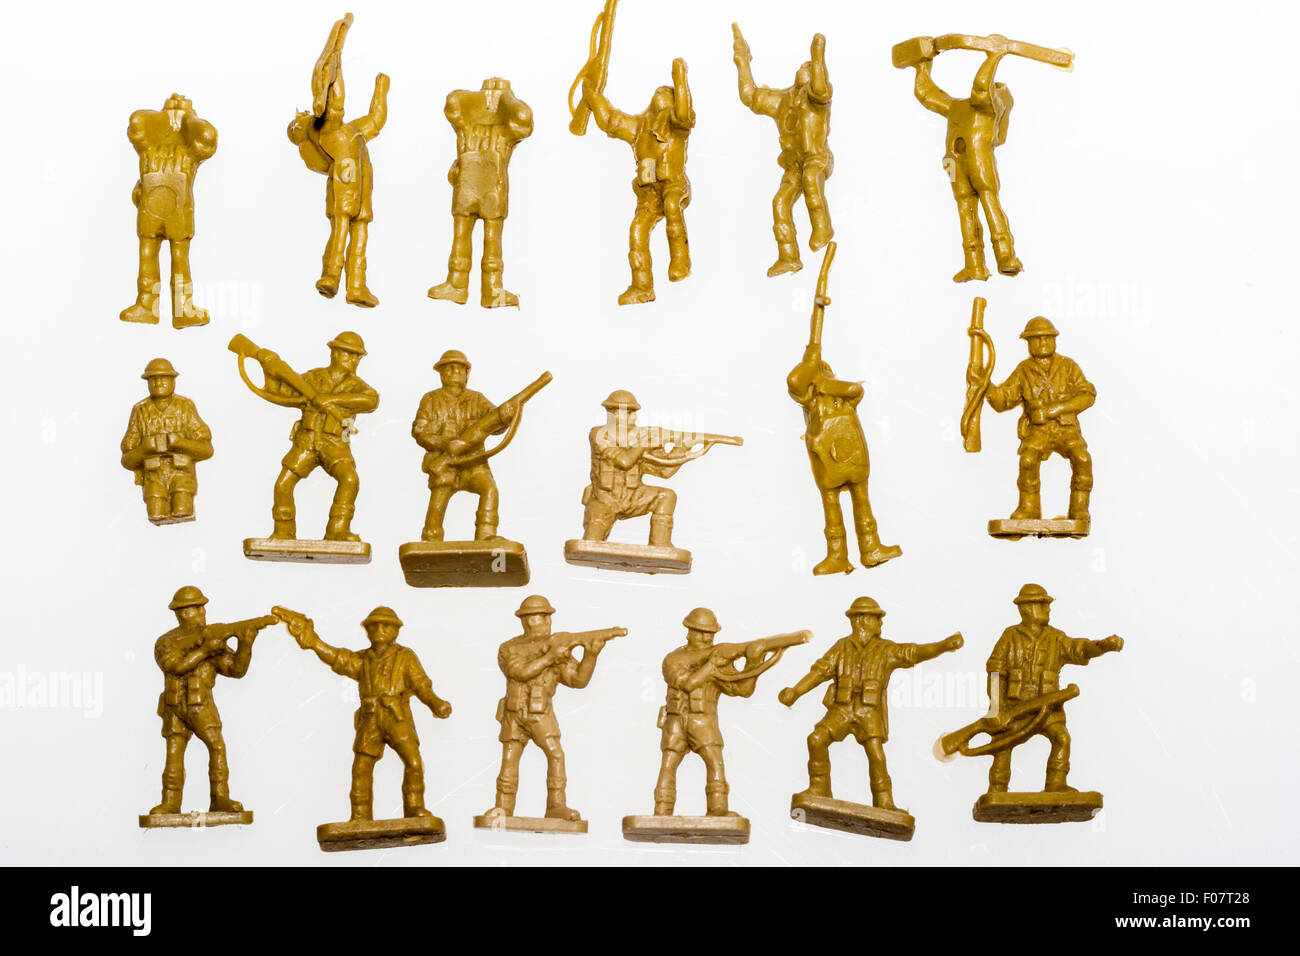 Airfix HO/OO plastic model soldier figures  World War Two, 8th army